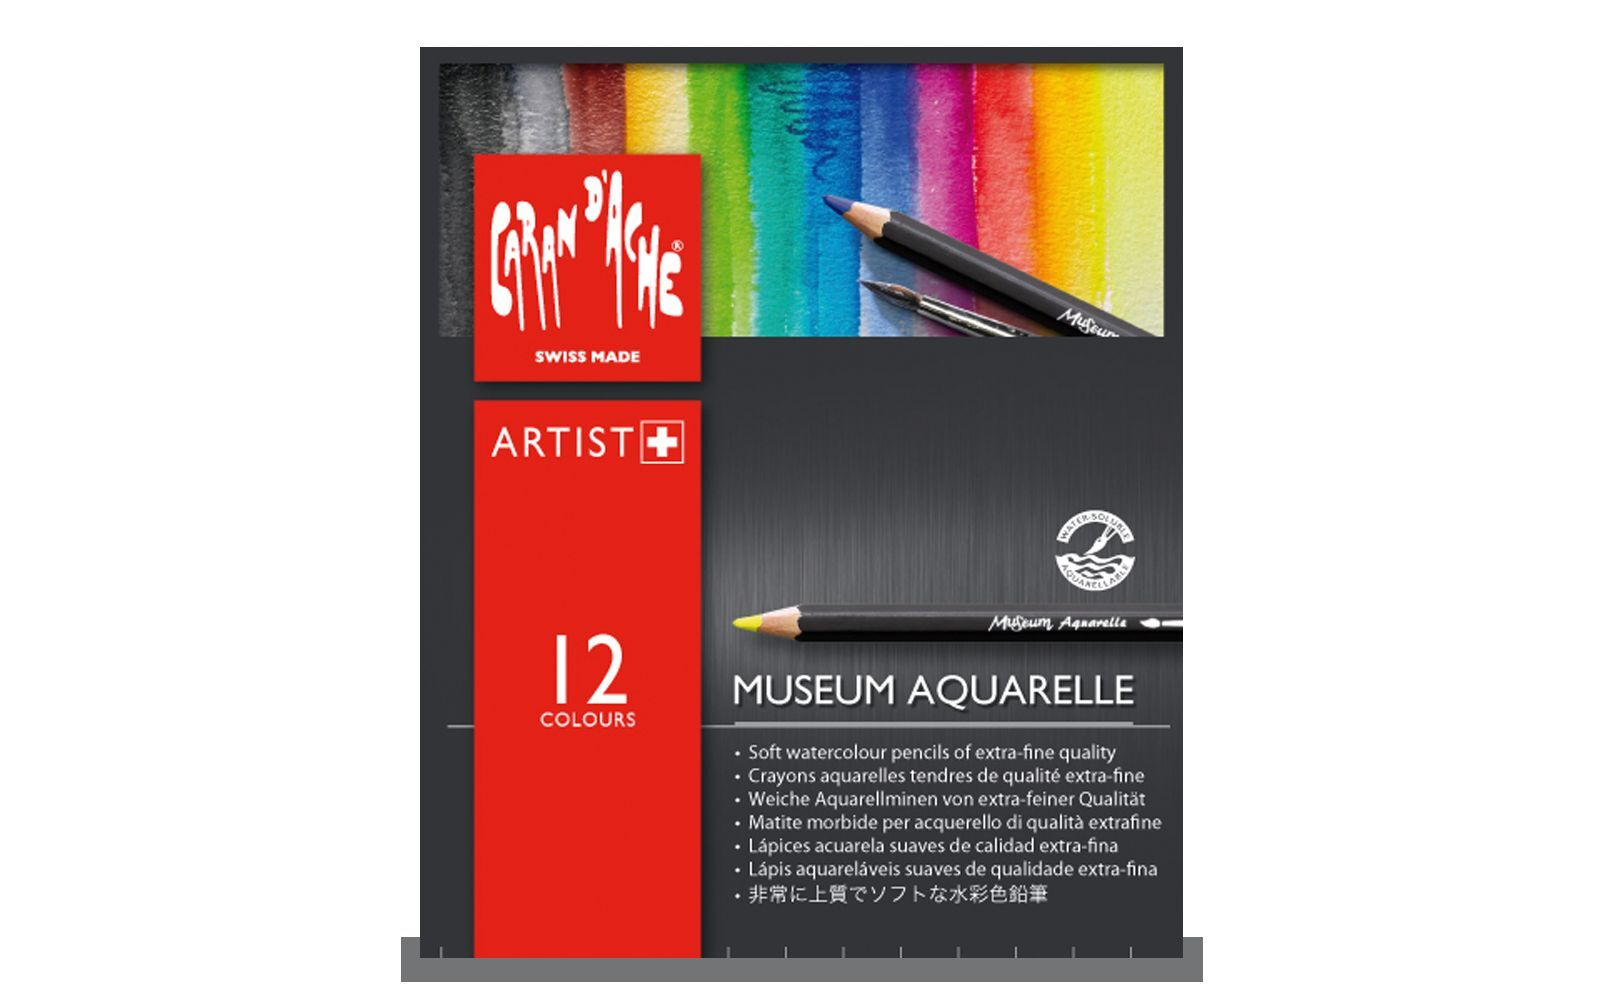 Caran d/'Ache Museum Aquarelle Watercolour PencilsDrawing SketchingAll Sets